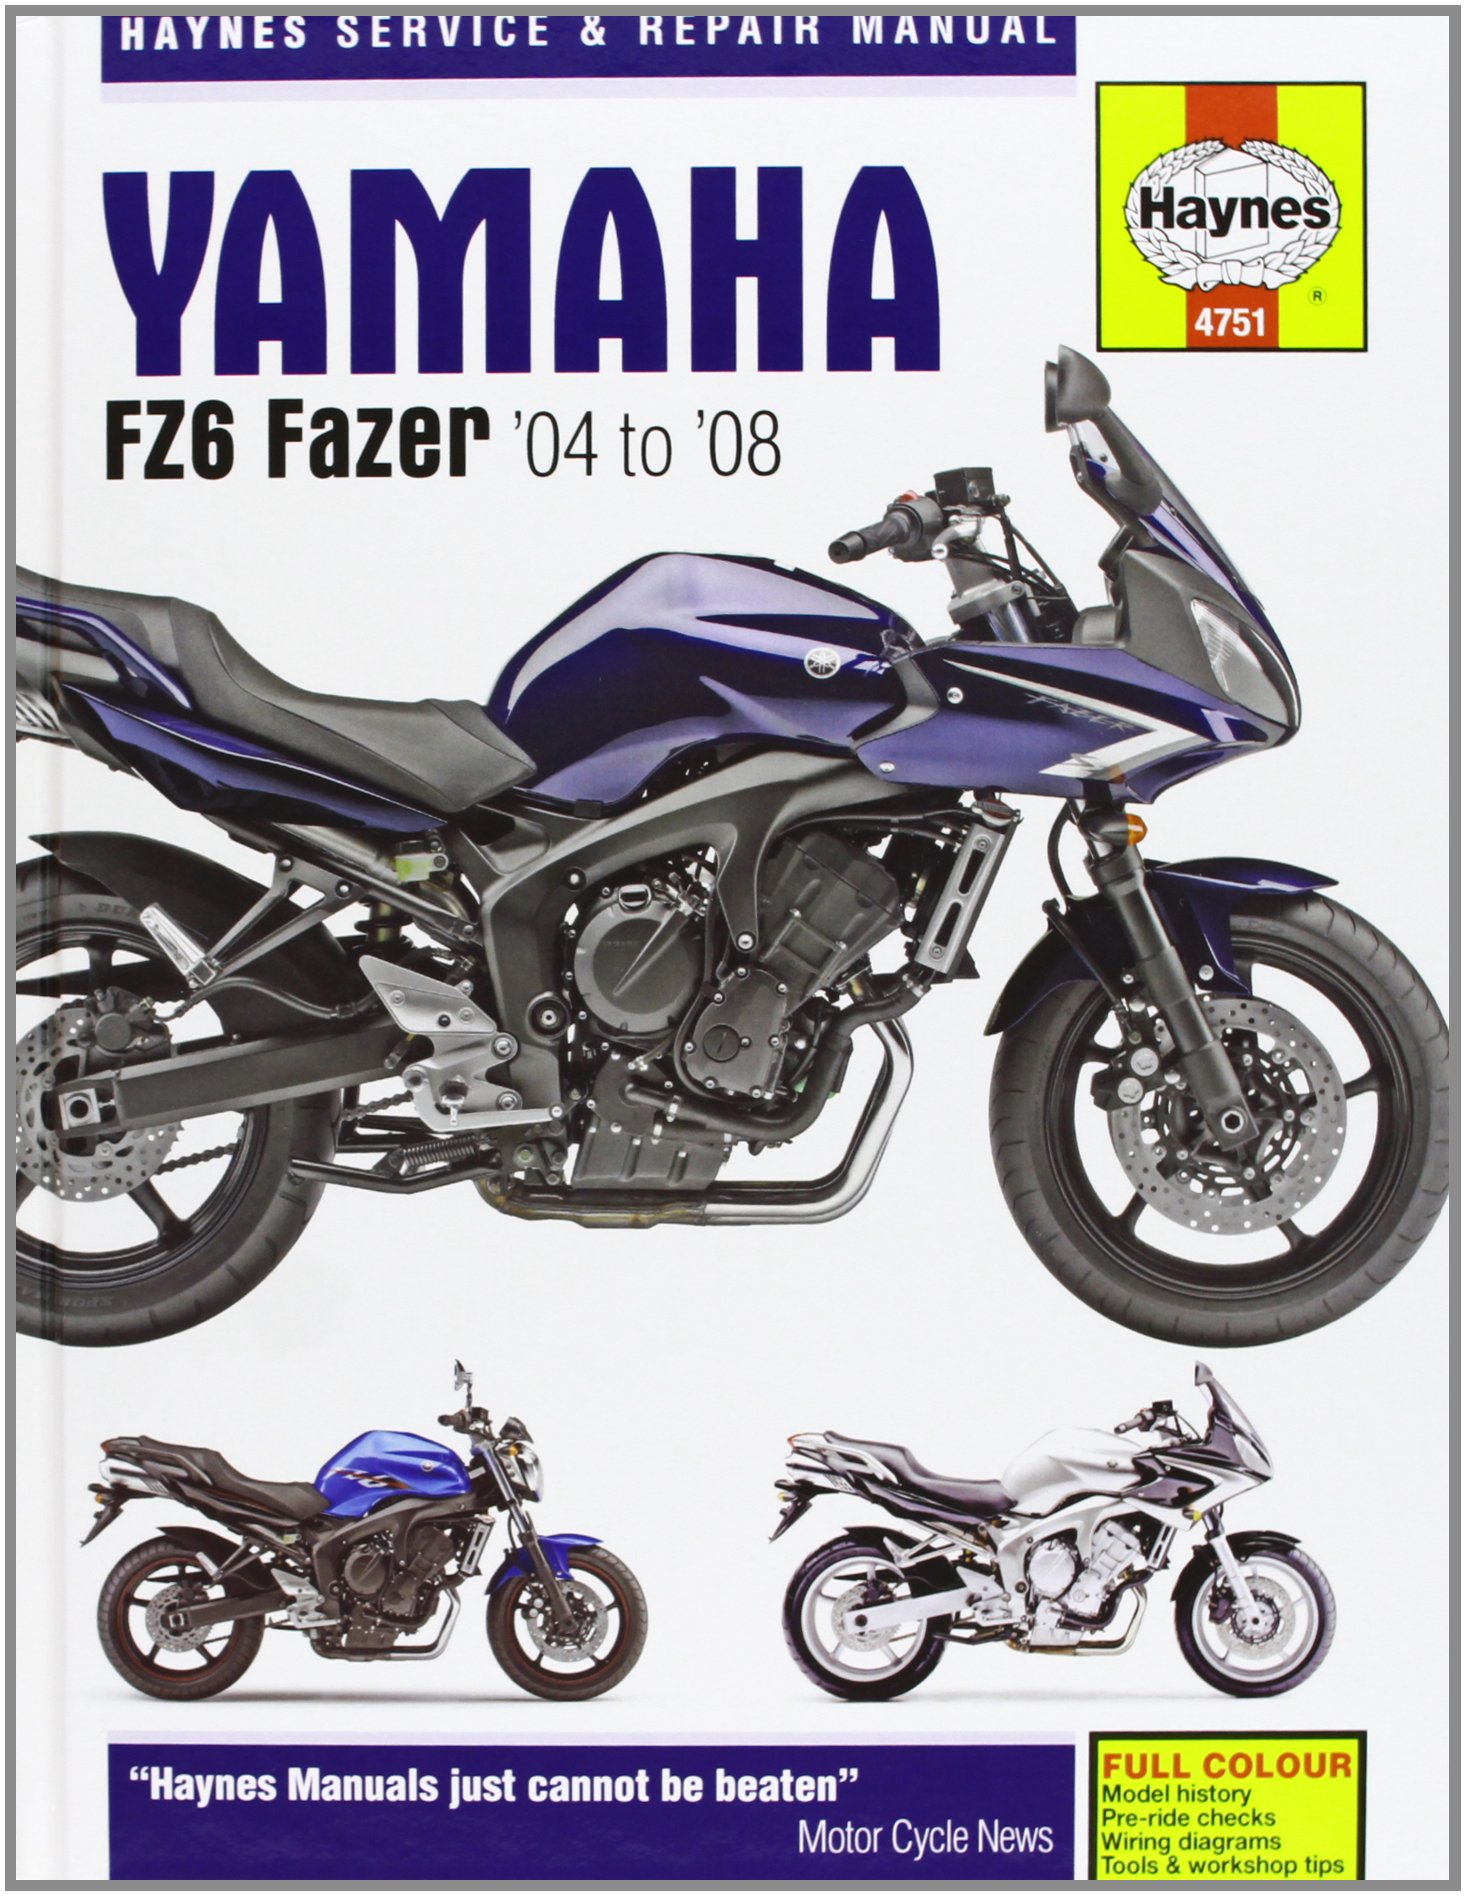 Yamaha FZ6 Fazer '04 to '08 Service & Repair Manual: mather-phil:  9781844257515: Amazon.com: Books